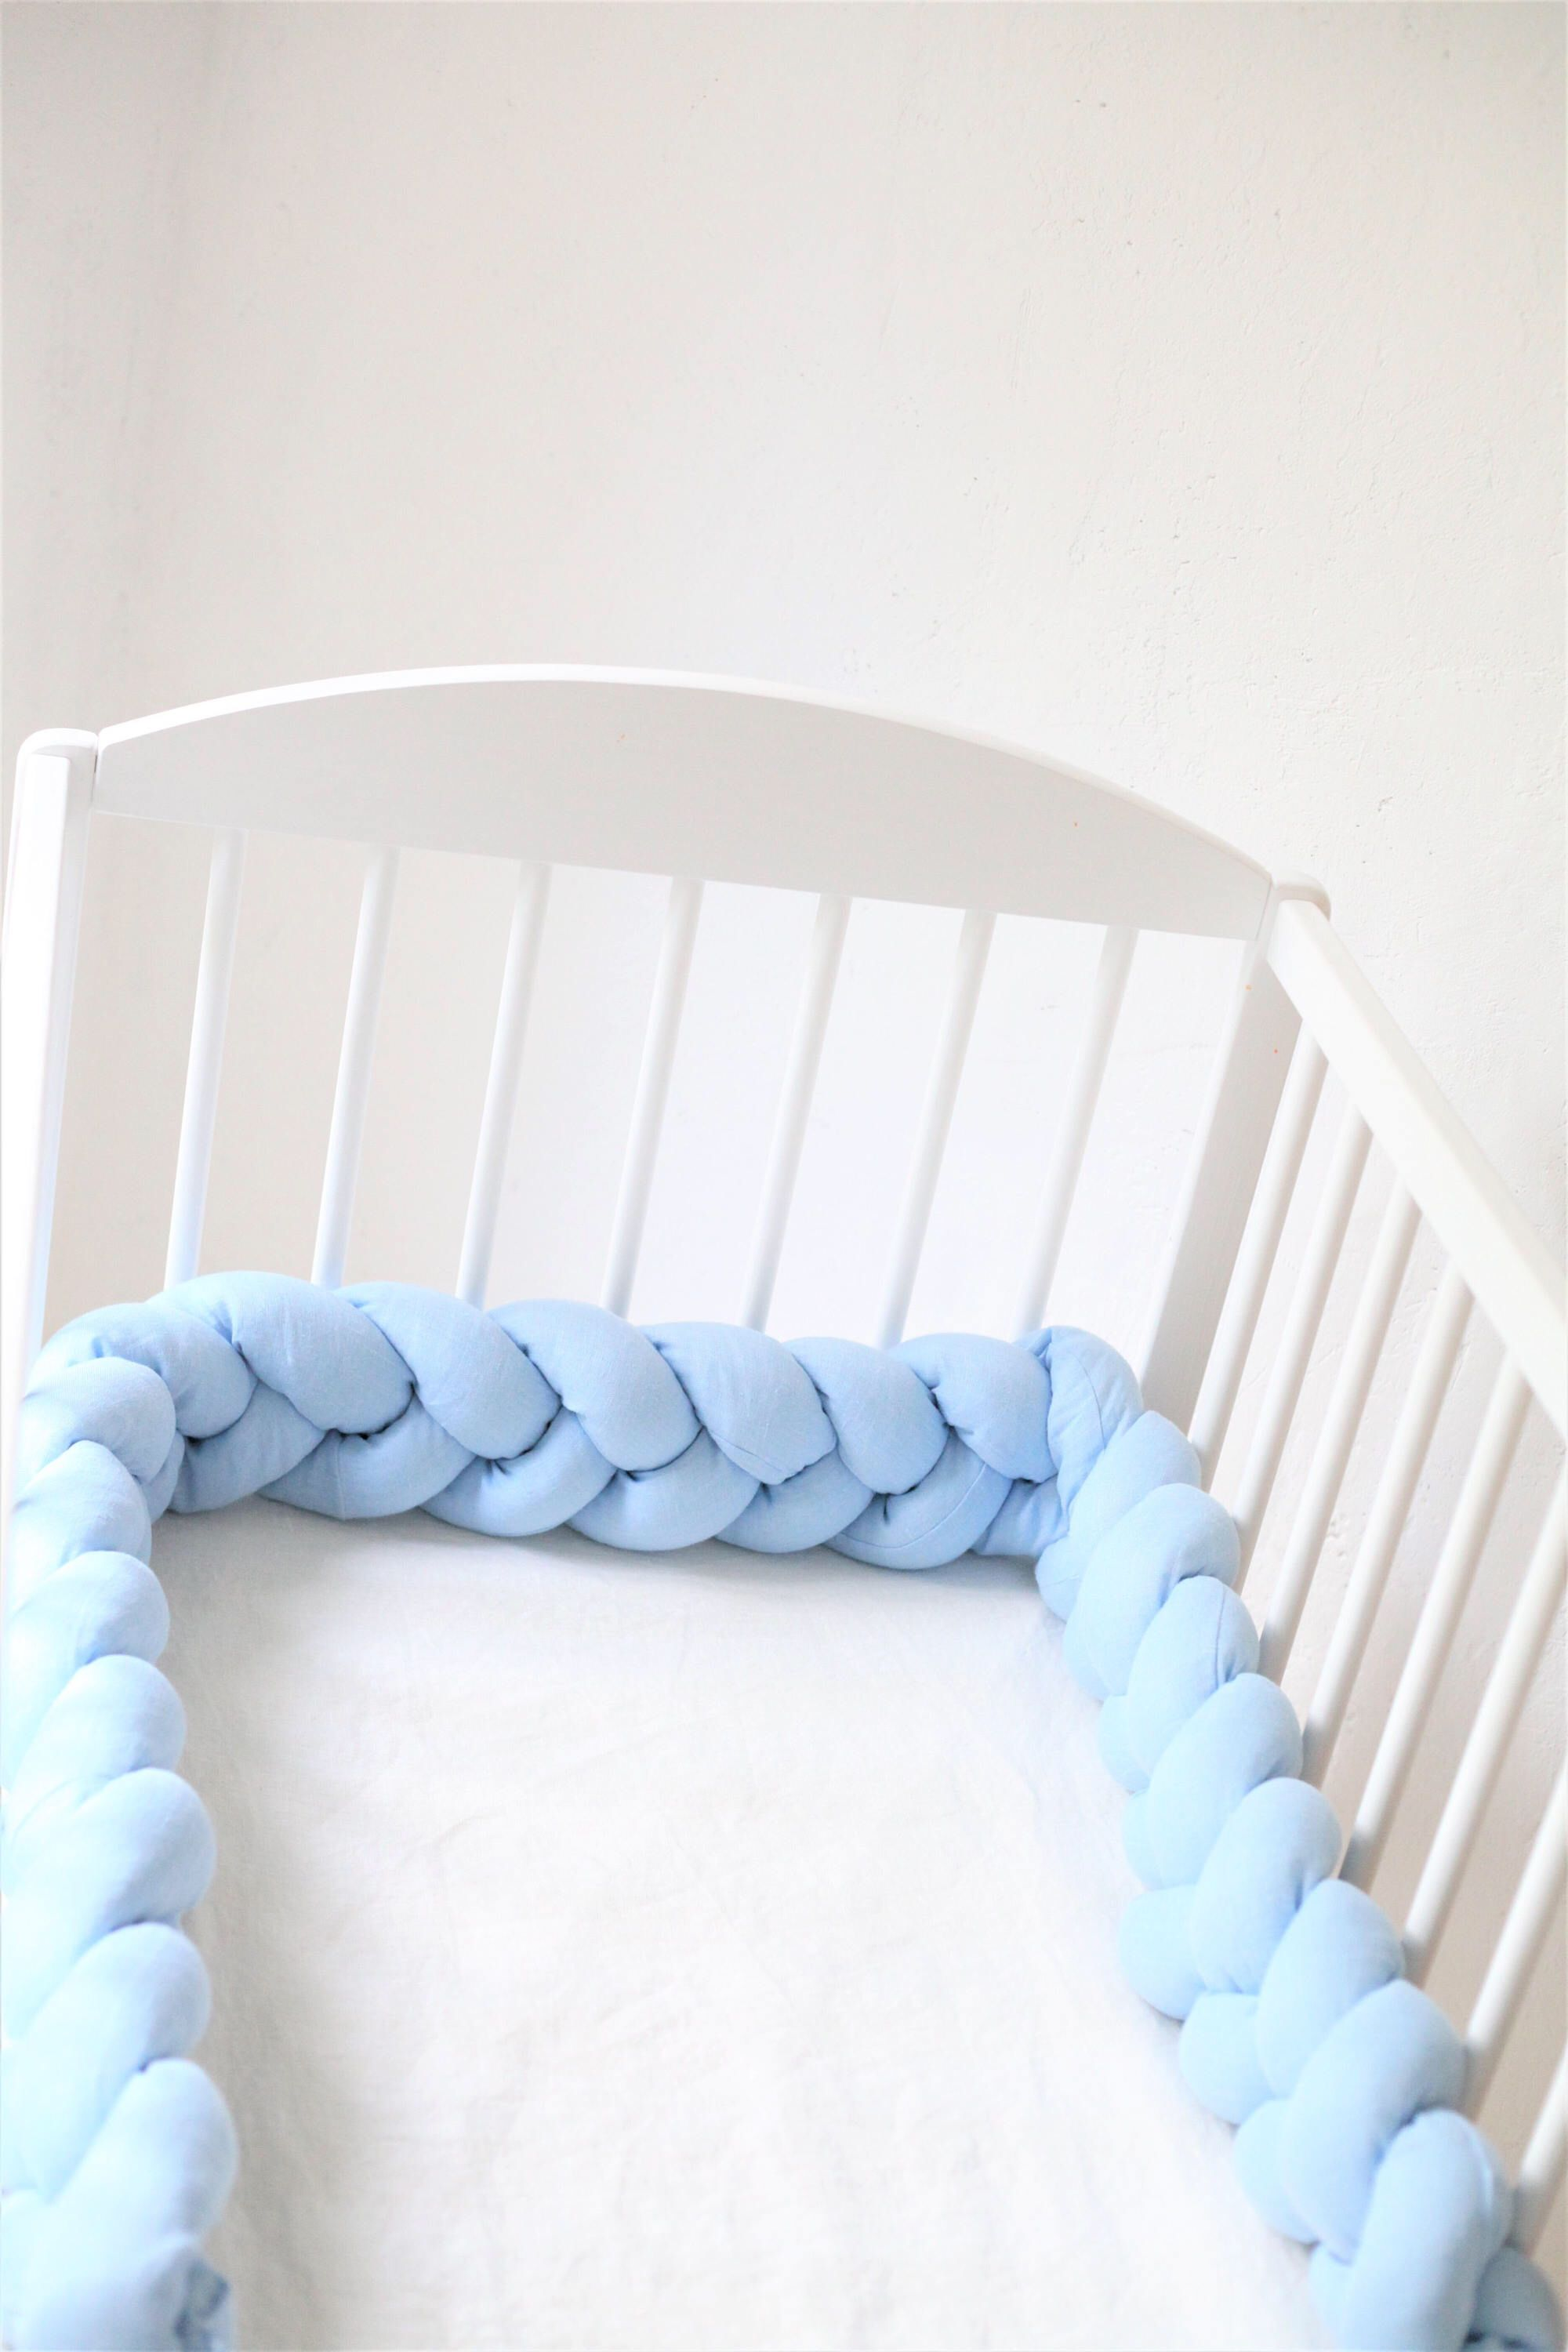 Excited to share the latest addition to my etsy shop crib bumper